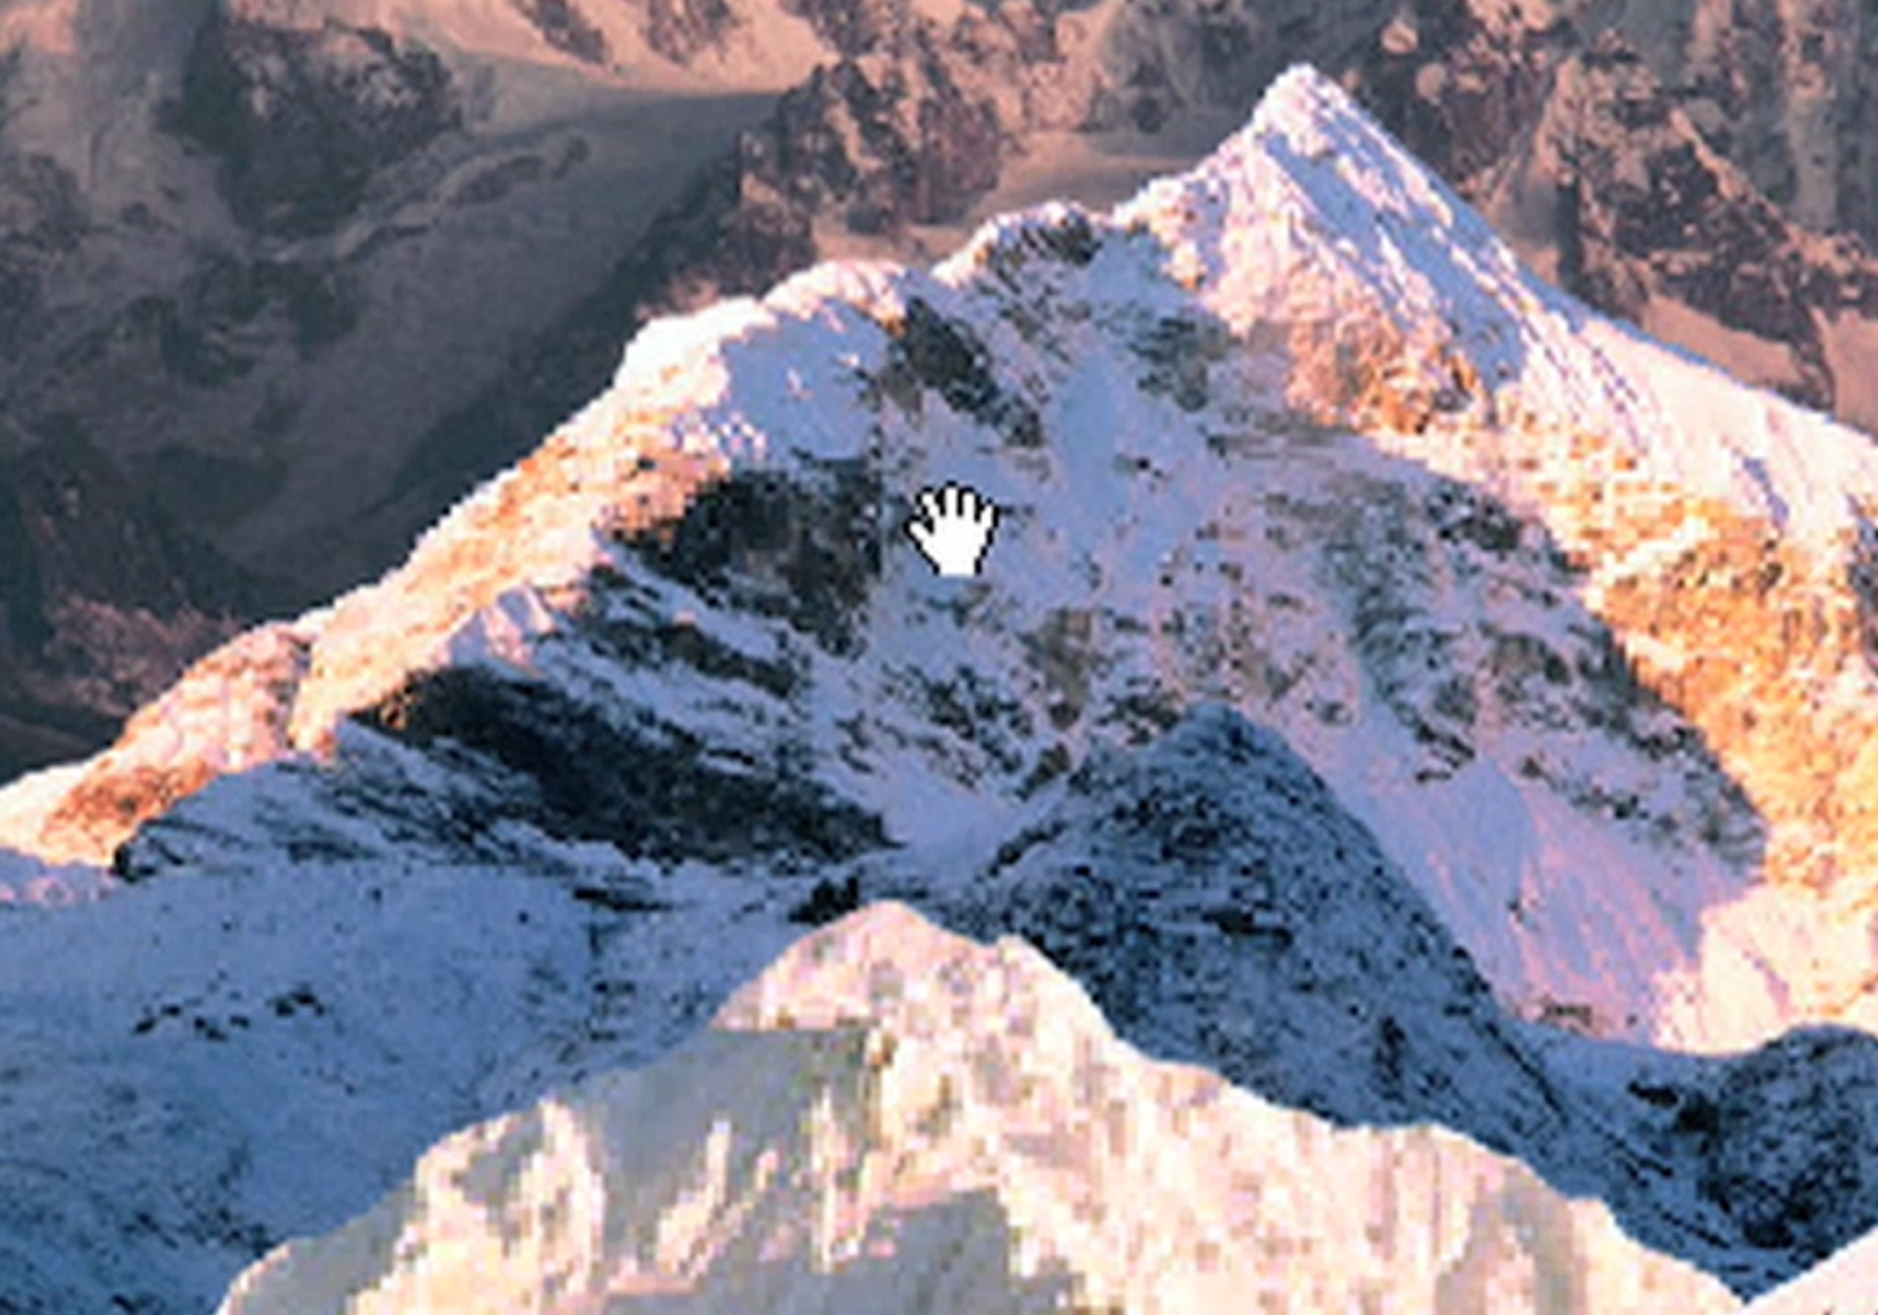 Jesse McLean,  Climbing , 2009, video, 6 minutes, artwork and image courtesy of the artist